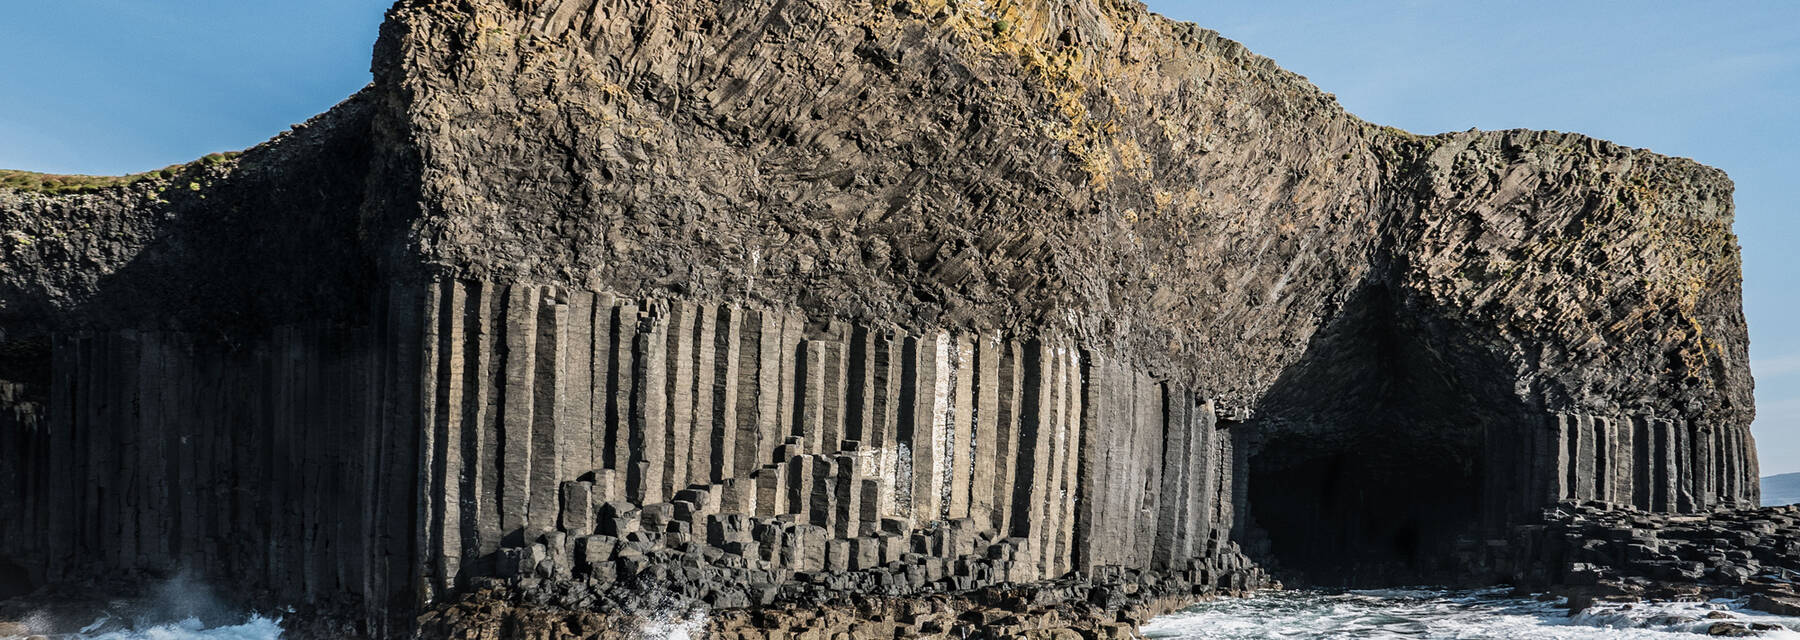 The entrance to Fingal's Cave showing the basalt rock columns